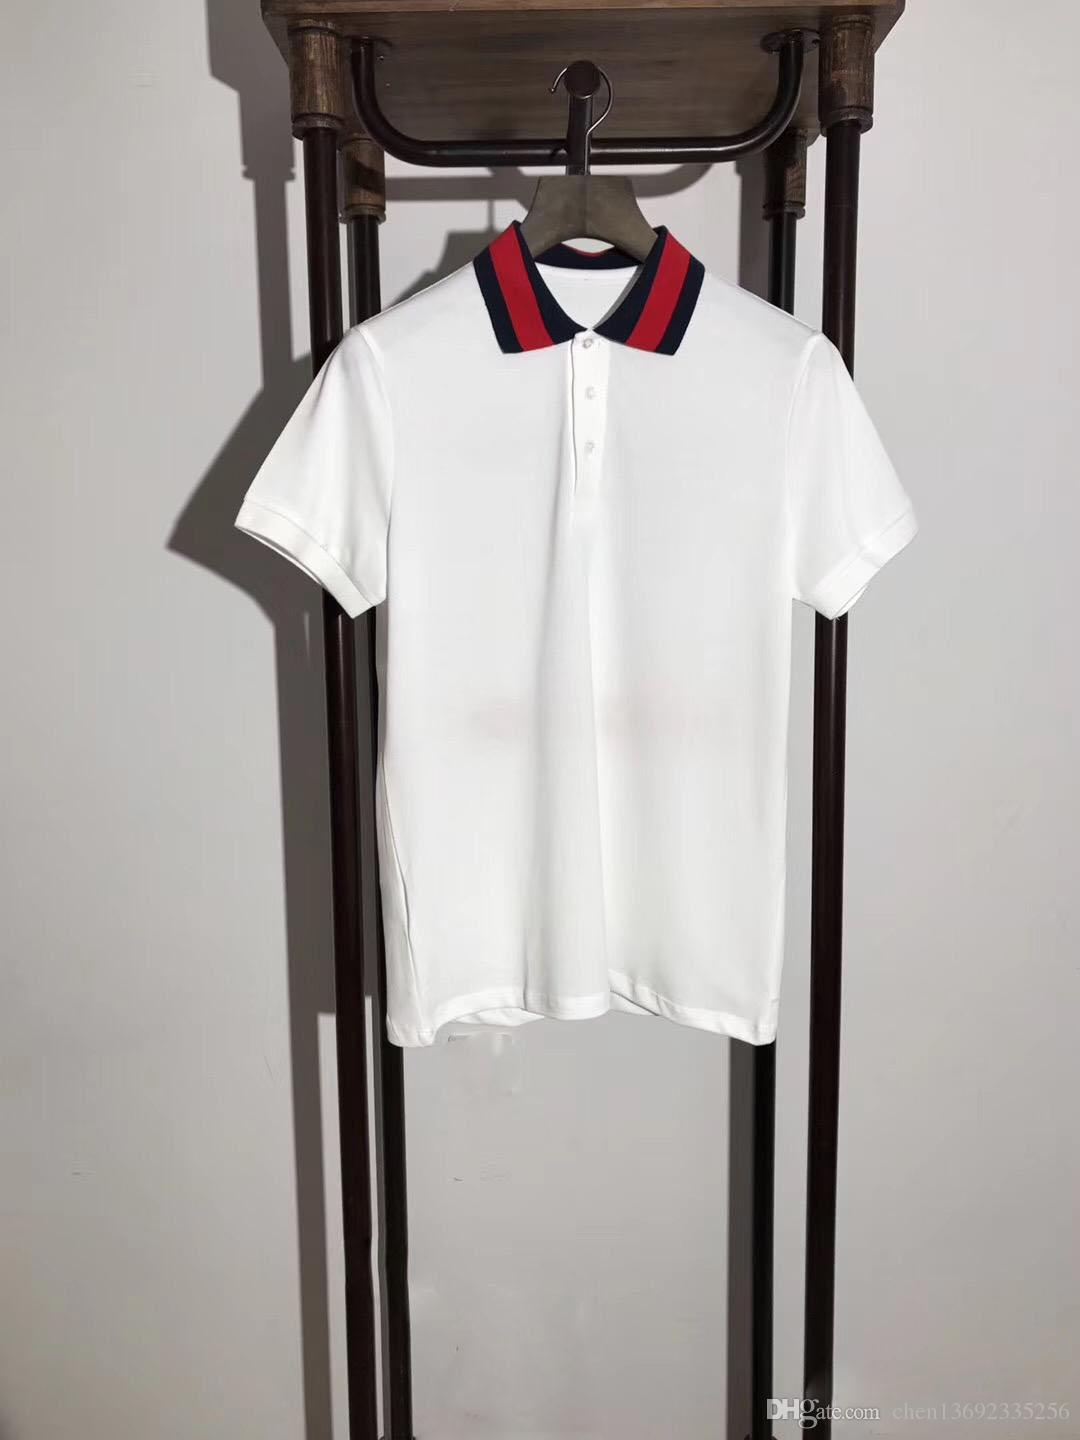 abcc09cc Us Polo T Shirts Wholesale - DREAMWORKS